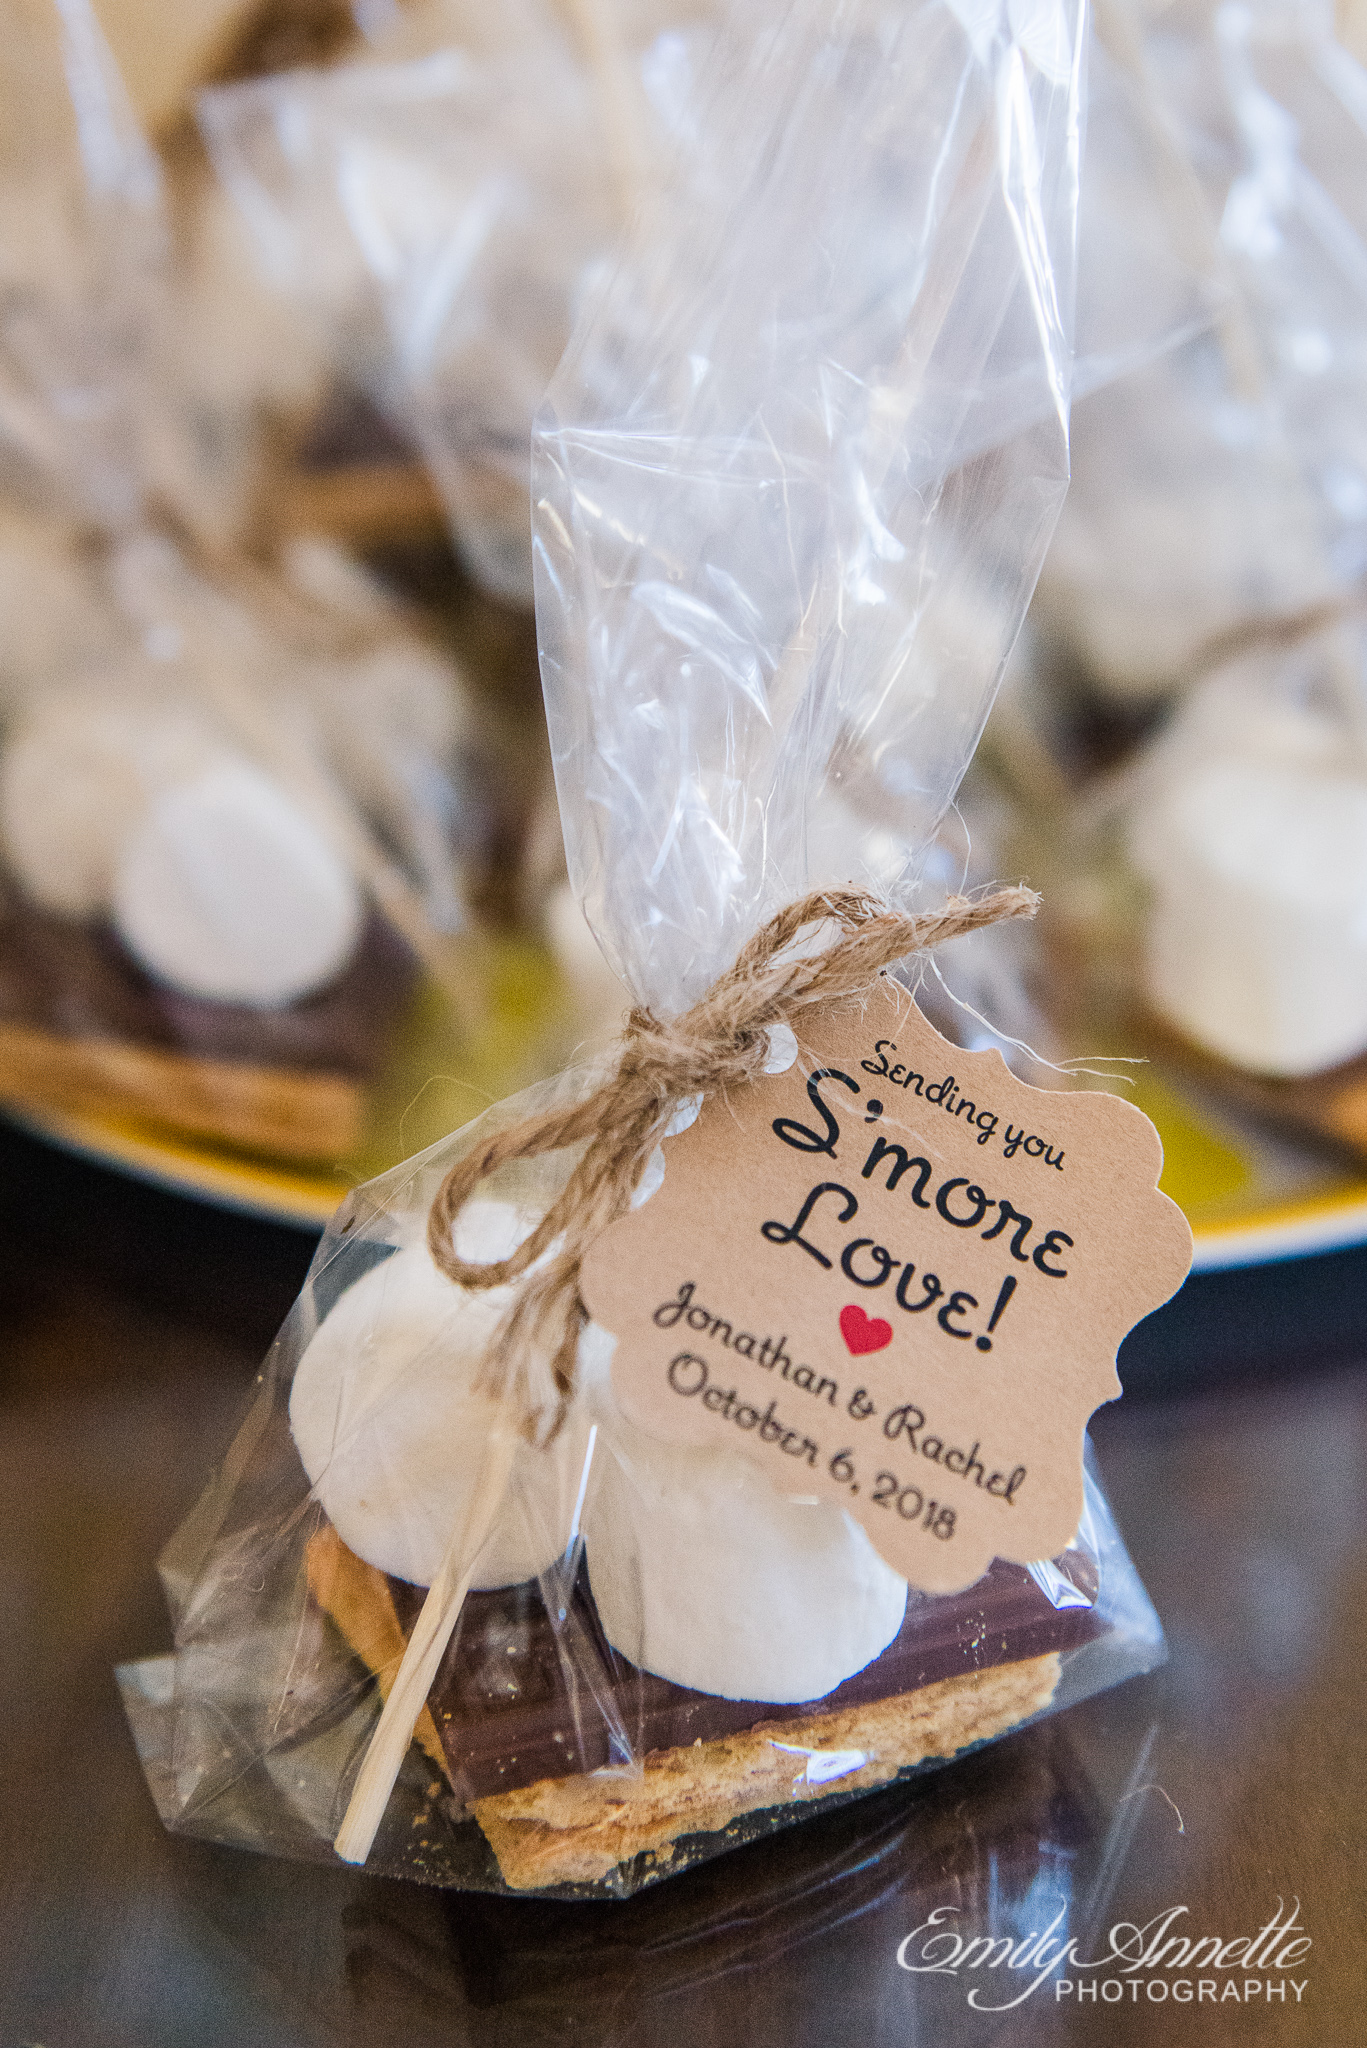 Wedding favors made of s'mores materials for guests of a country wedding reception at Amber Grove near Richmond, Virginia